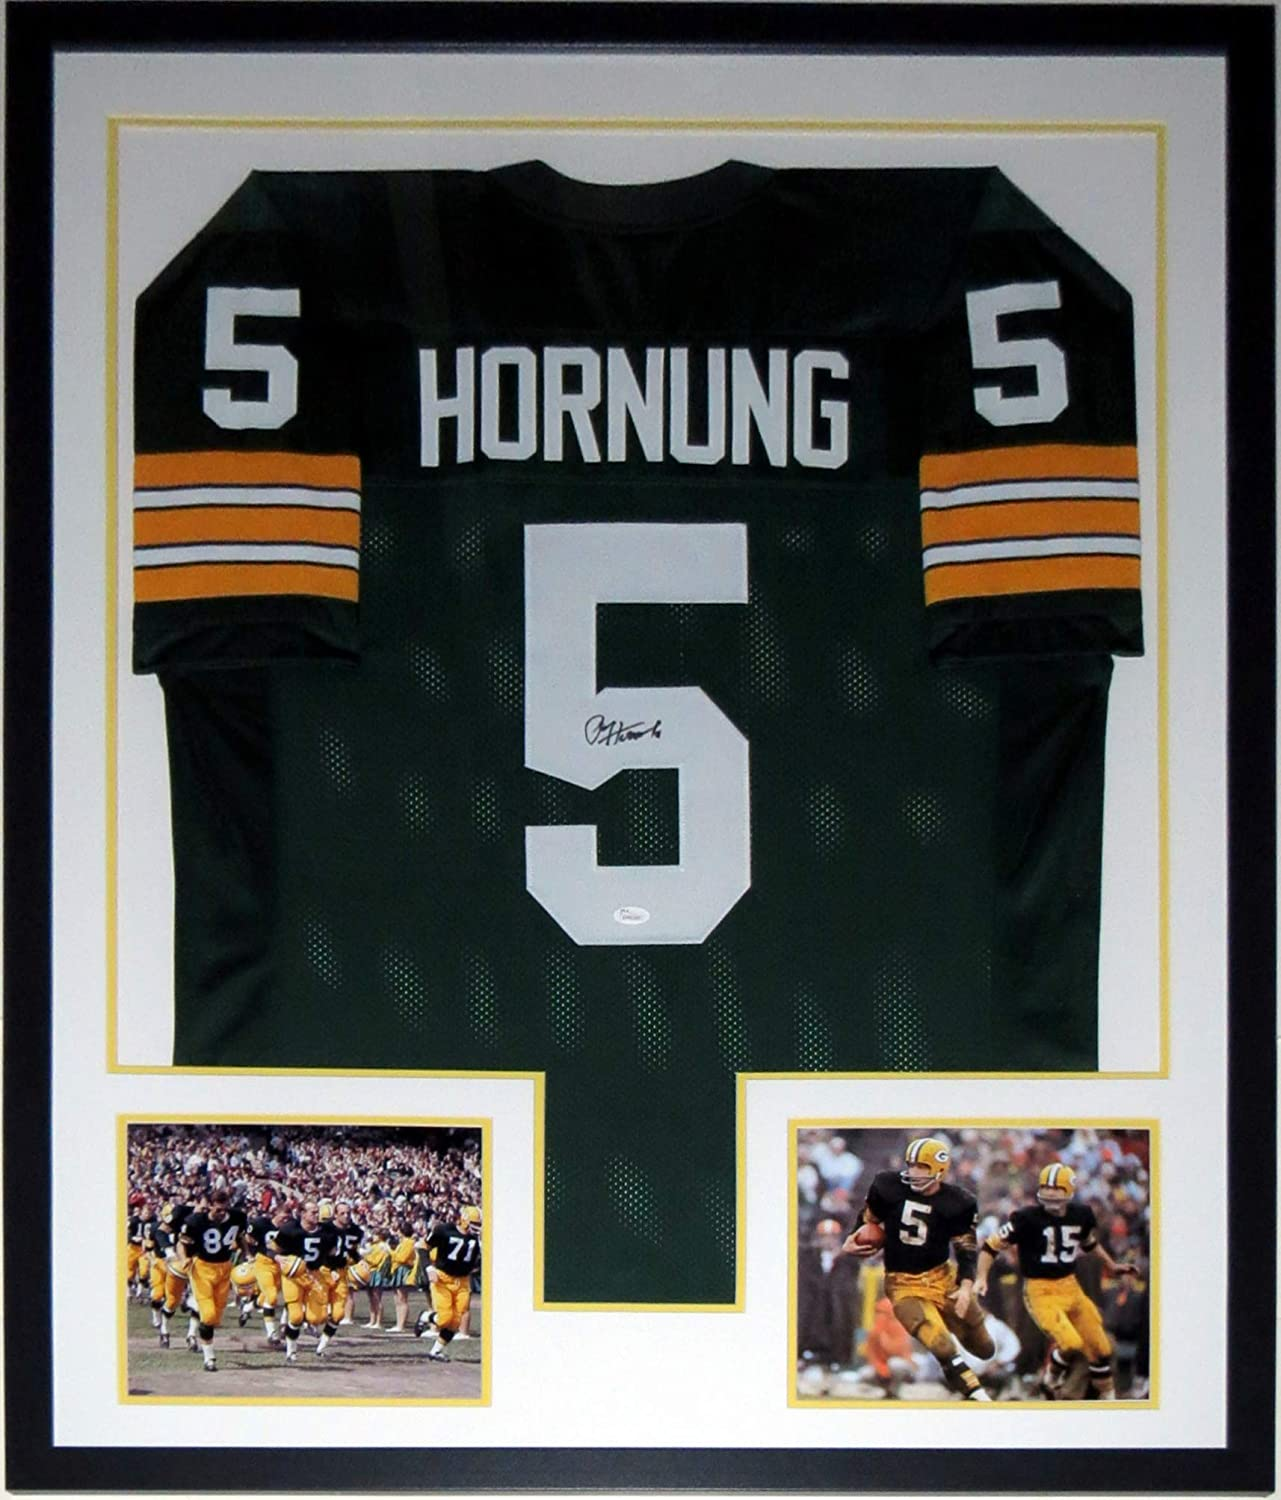 Paul Hornung Signed Green Bay Packers Jersey - JSA COA Authenticated - Professionally Framed & 2 8x10 Photo 34x42